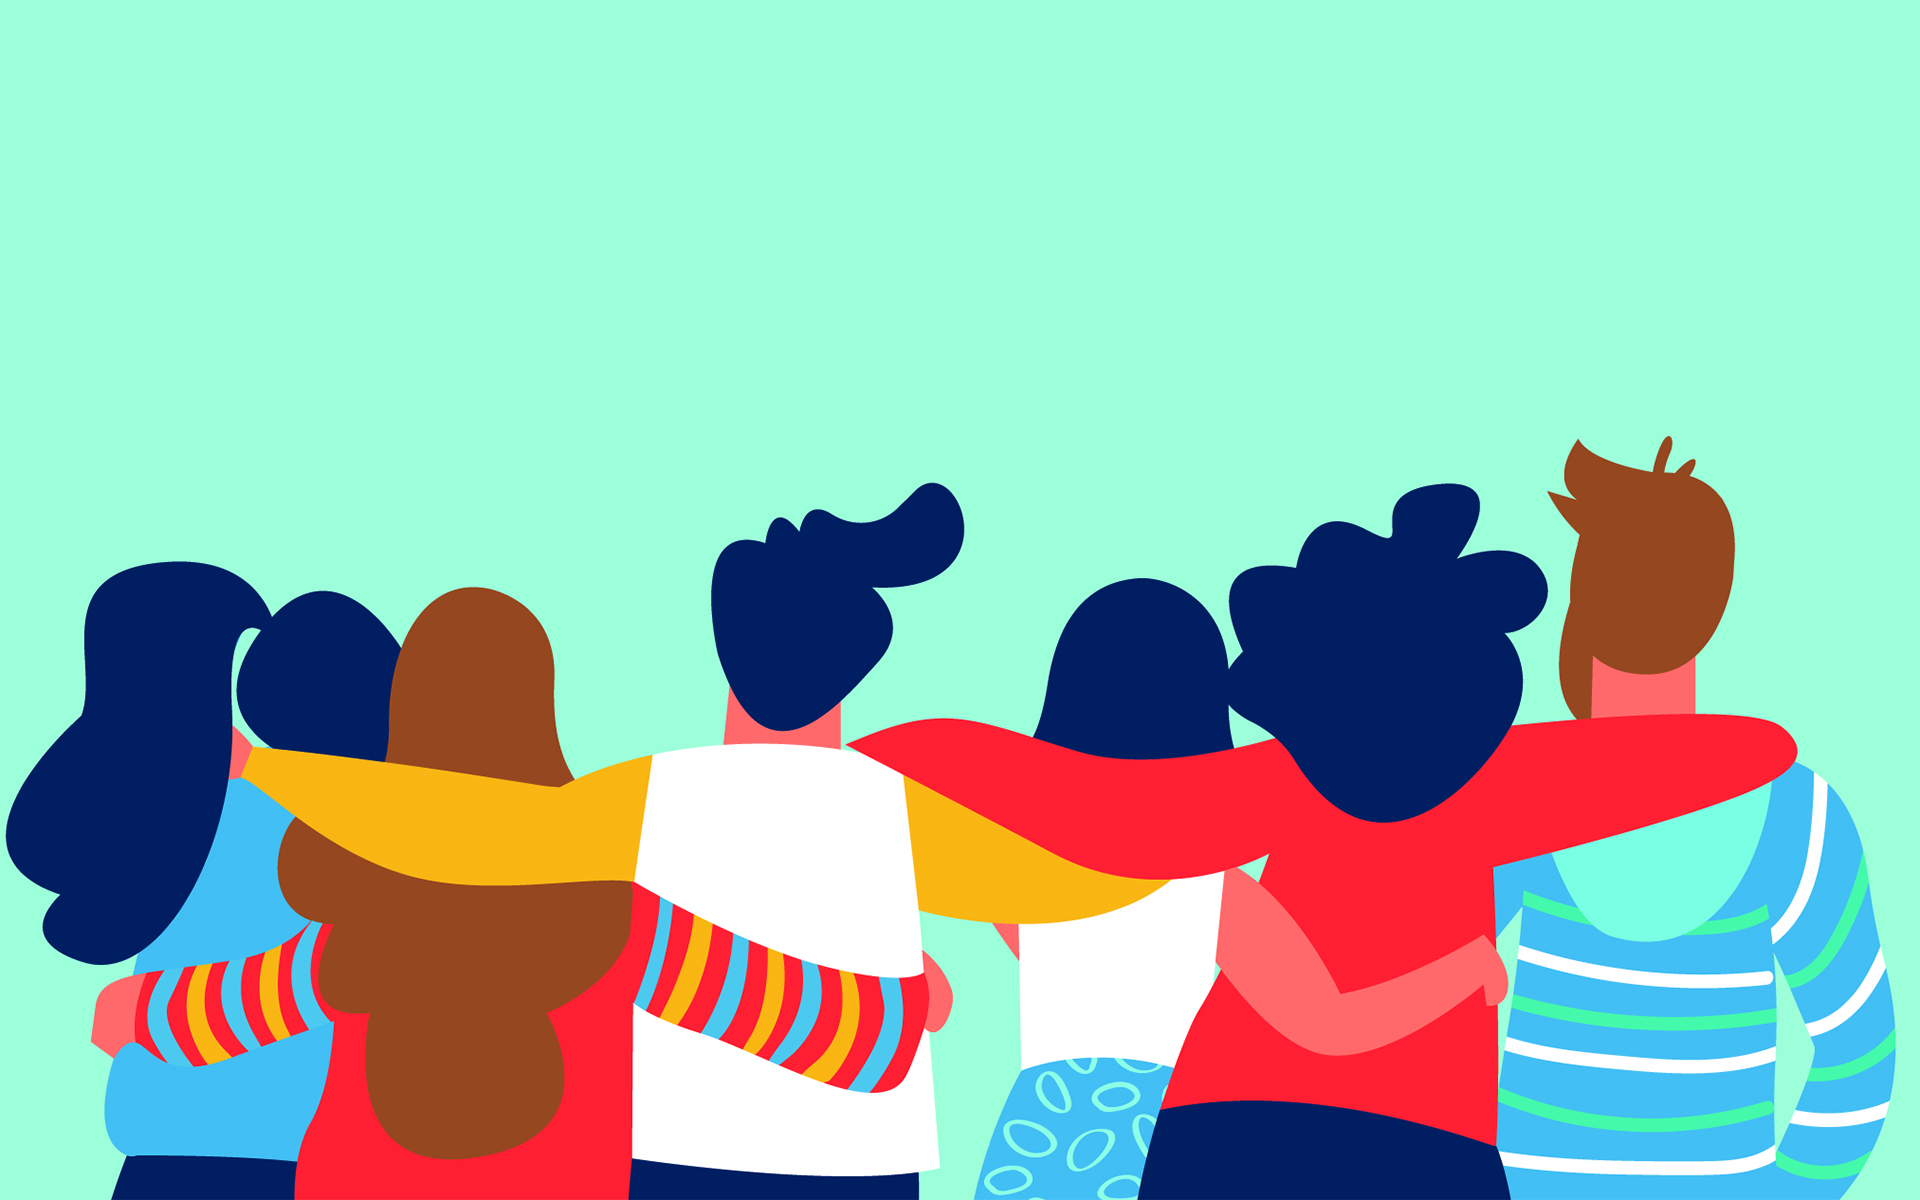 A guided meditation for turning awareness into action - building a better world together